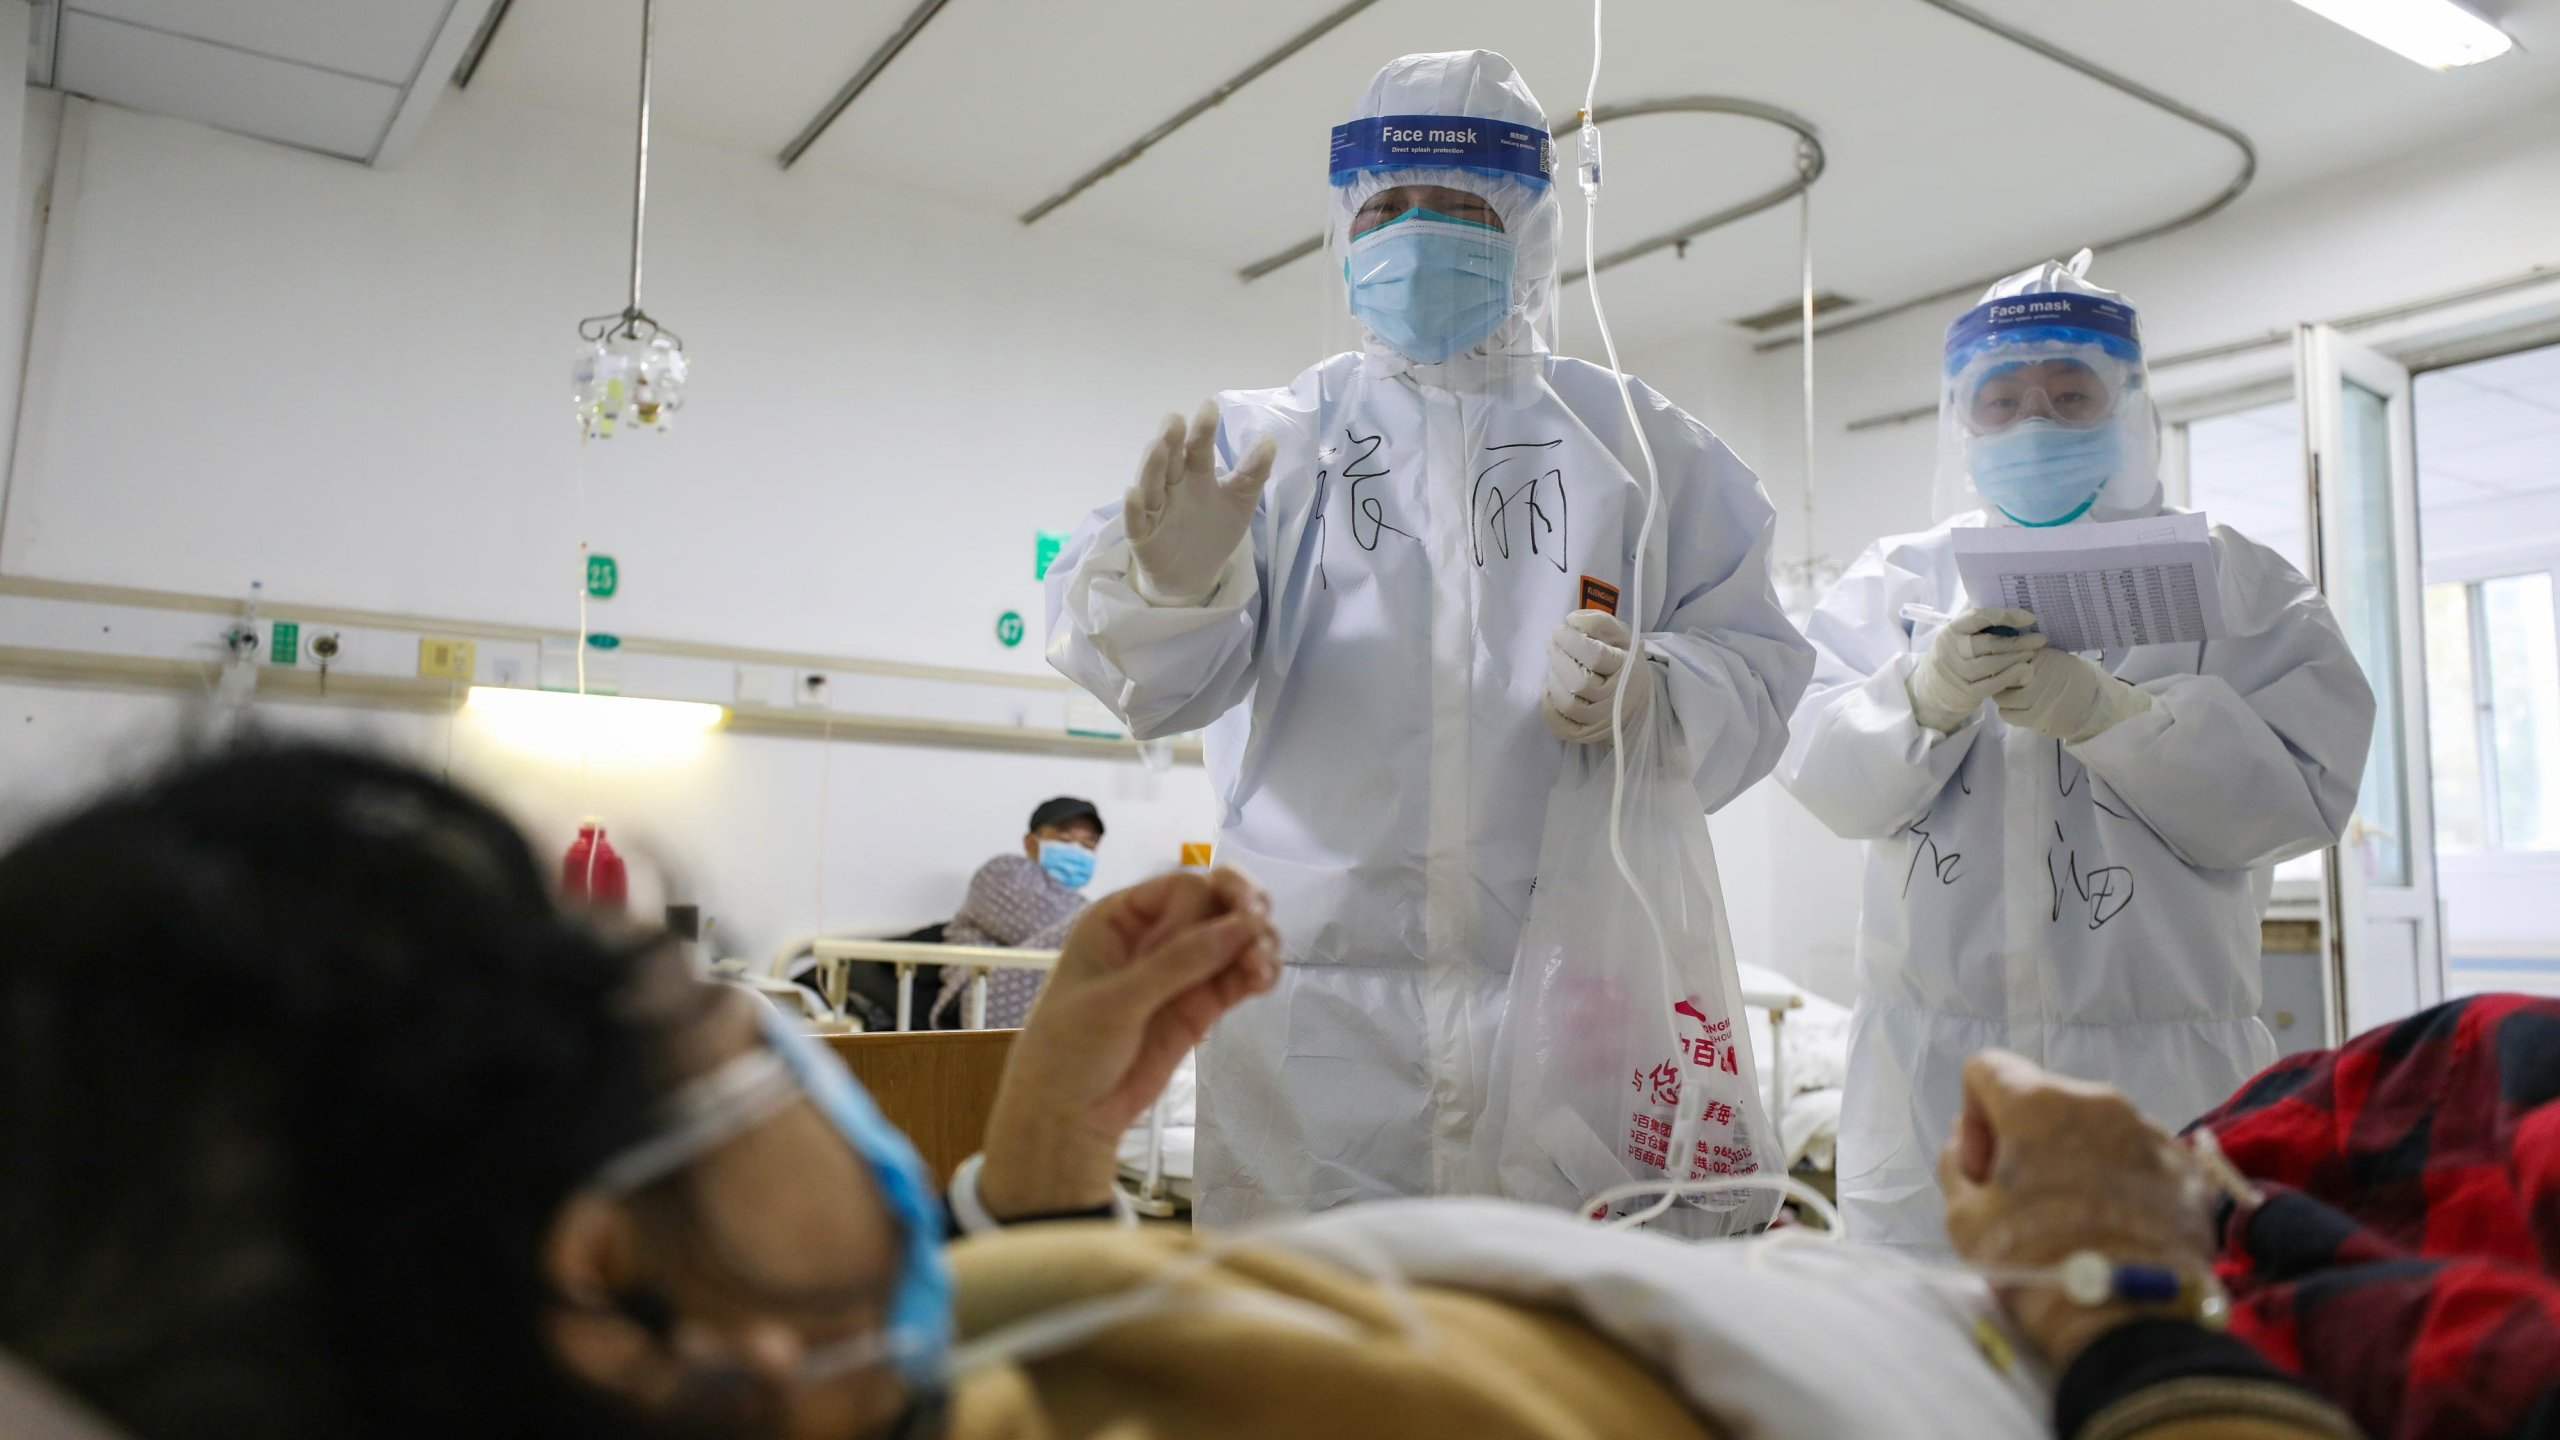 Medical personnel check the conditions of patients in Jinyintan Hospital in Wuhan, China on Feb. 13, 2020. (Credit: Barcroft Media via Getty Images)